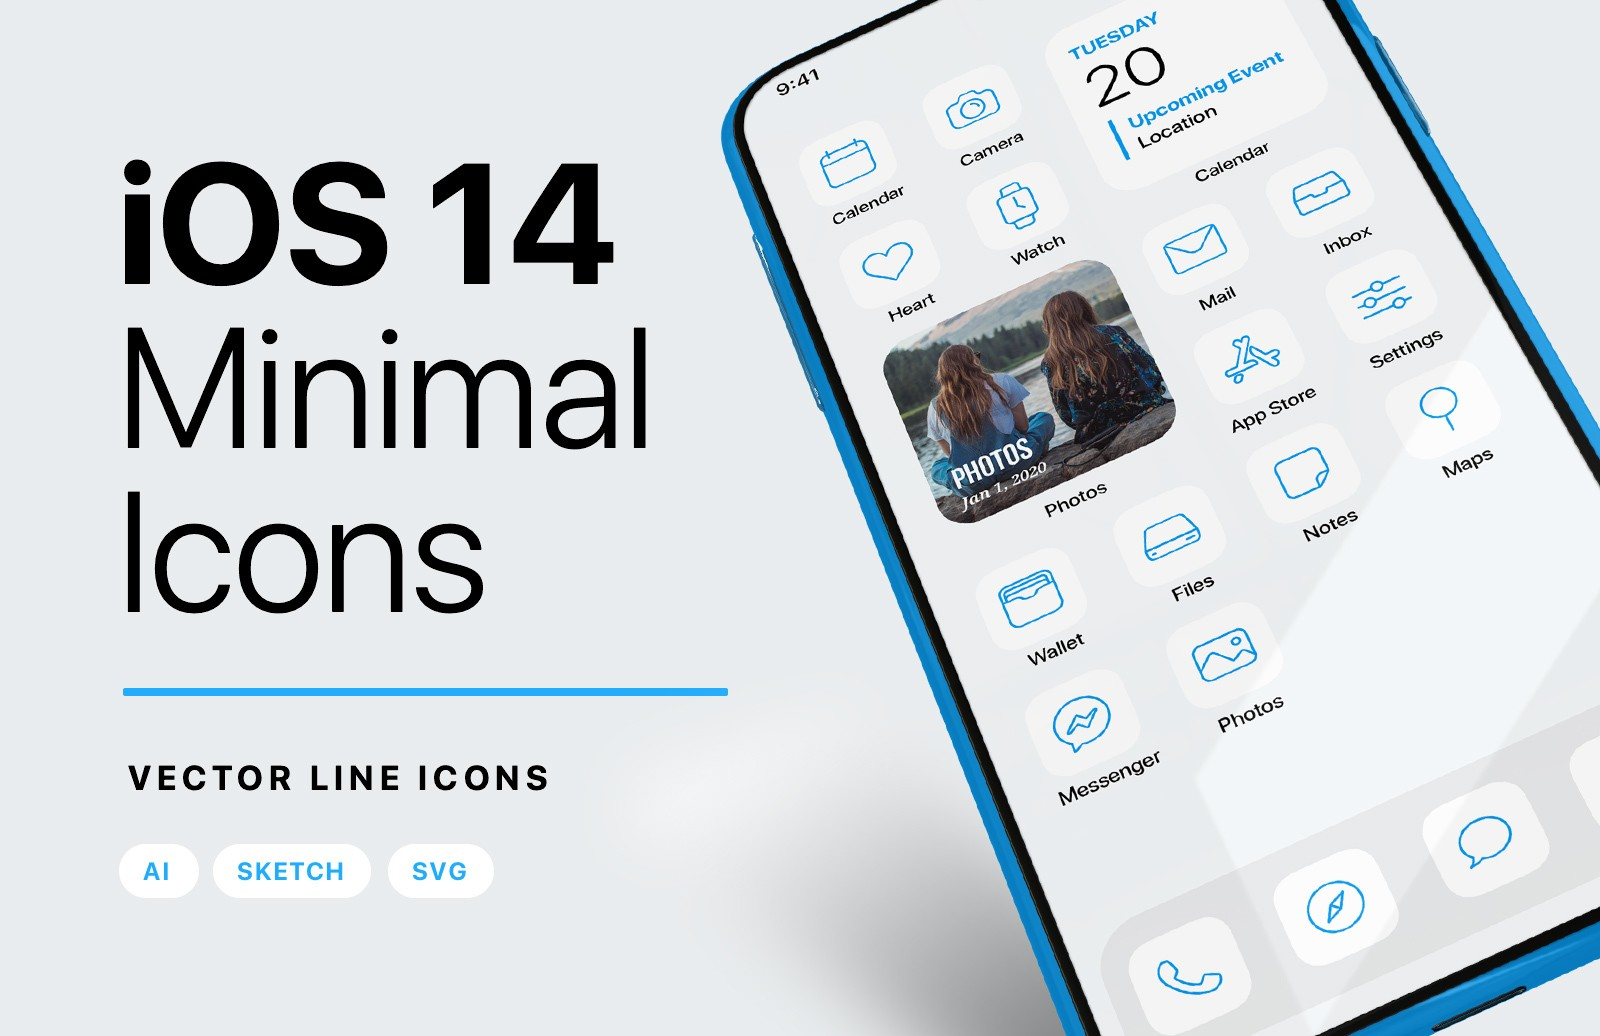 I Os 14 Minimal Icons Preview 1A